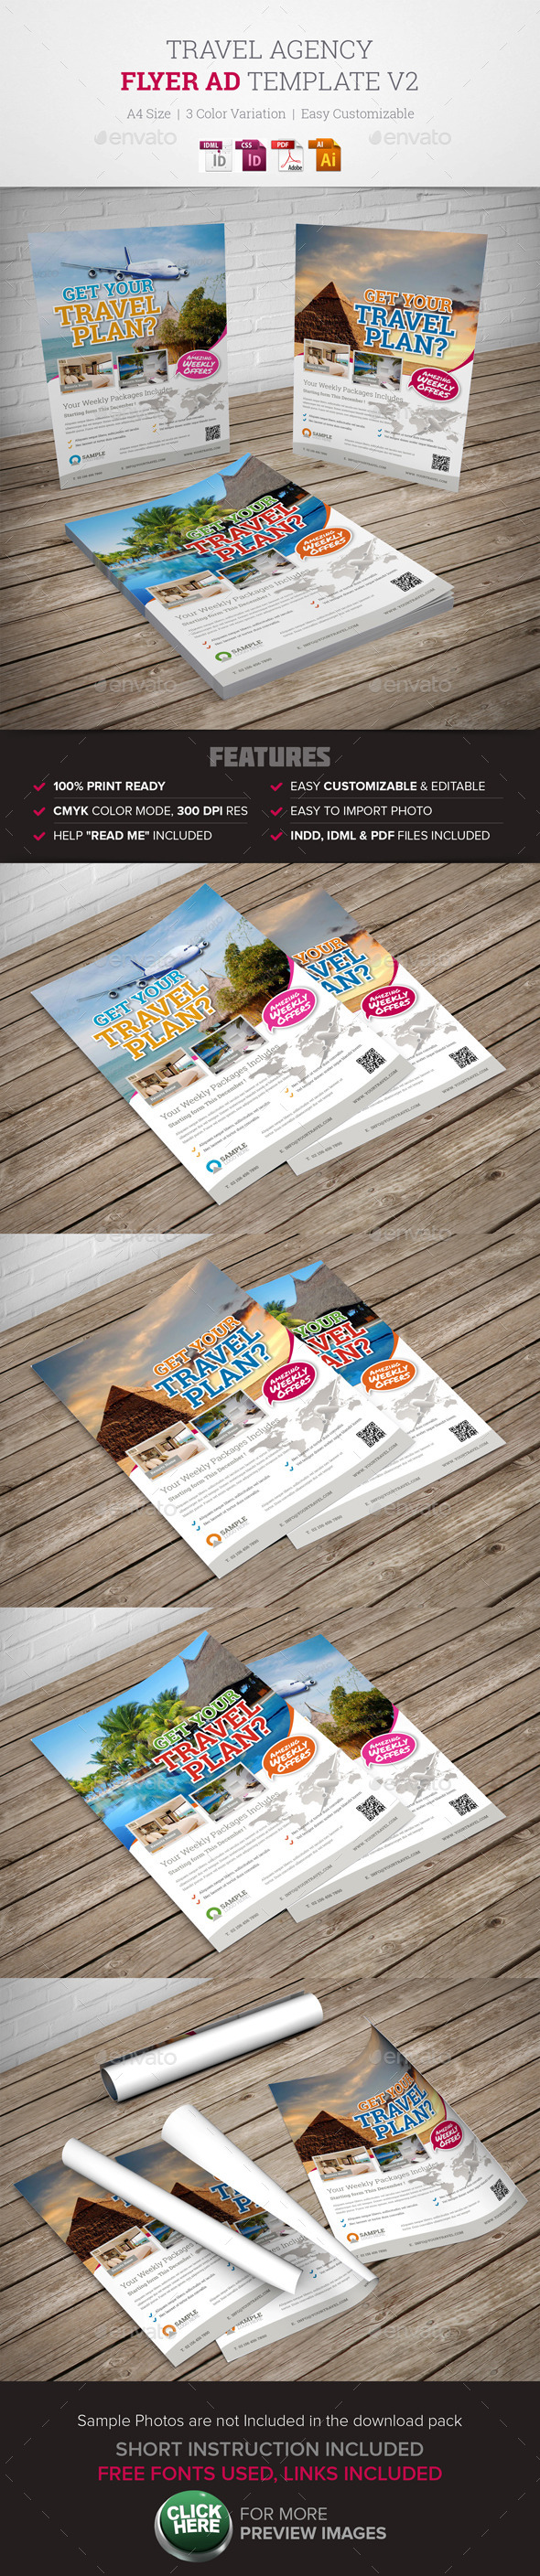 GraphicRiver Travel Agency Flyer Ad v2 9954936